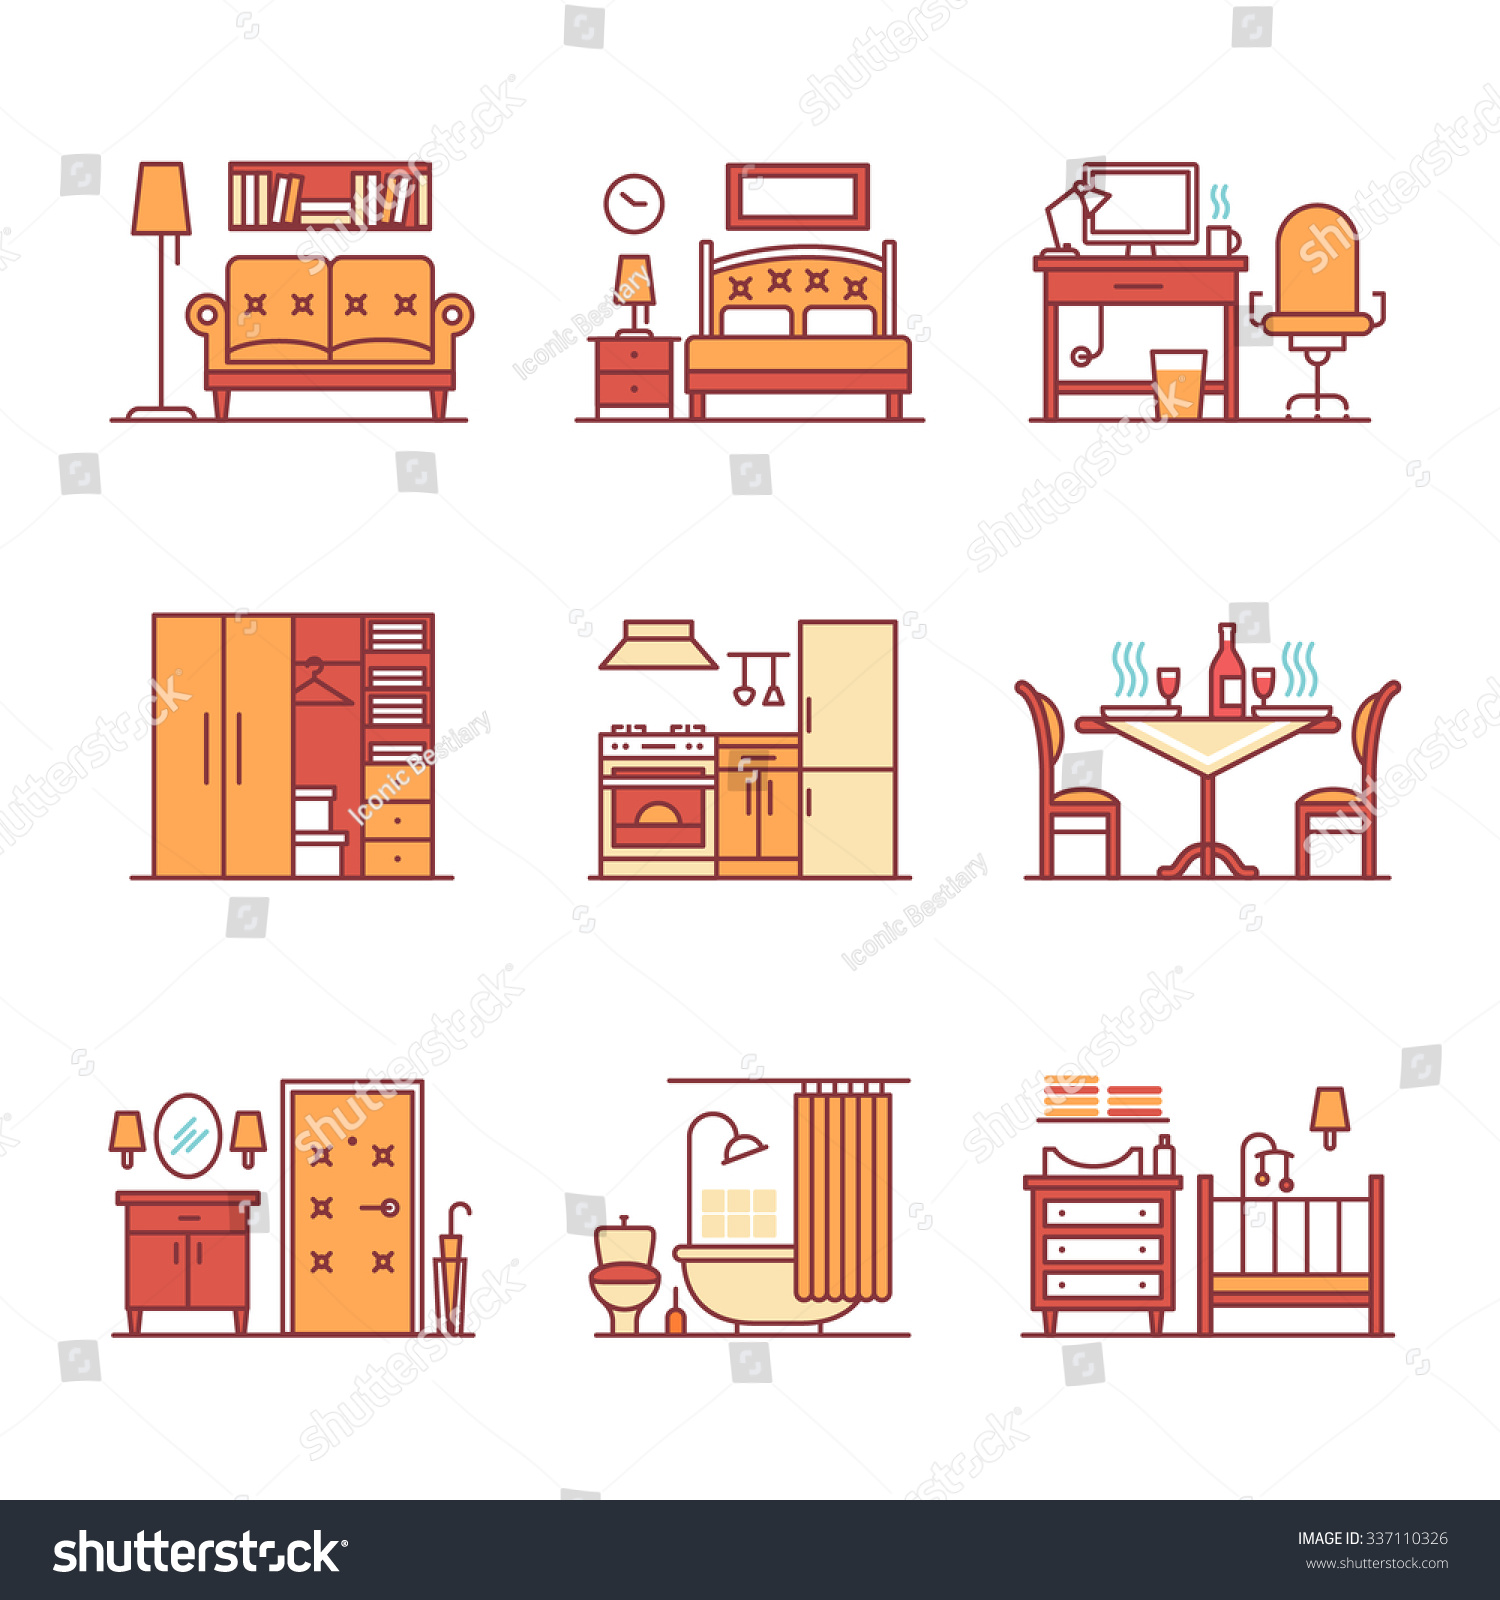 Home room types furniture signs set stock vector 337110326 shutterstock - Types veneers used home furniture ...